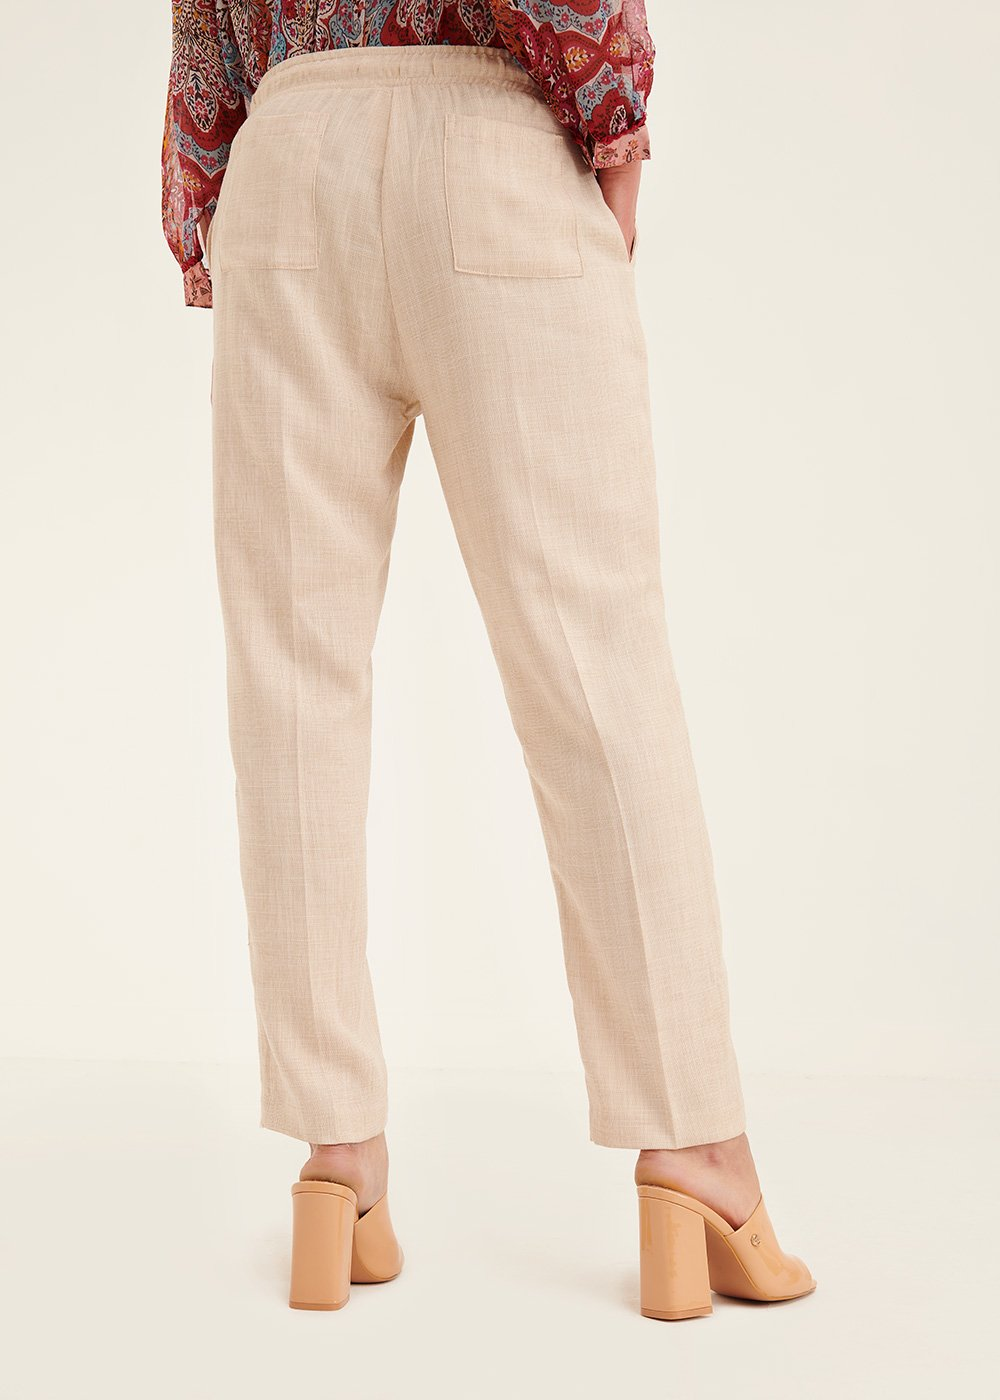 Cara trousers with elastic waistband - Light Beige - Woman